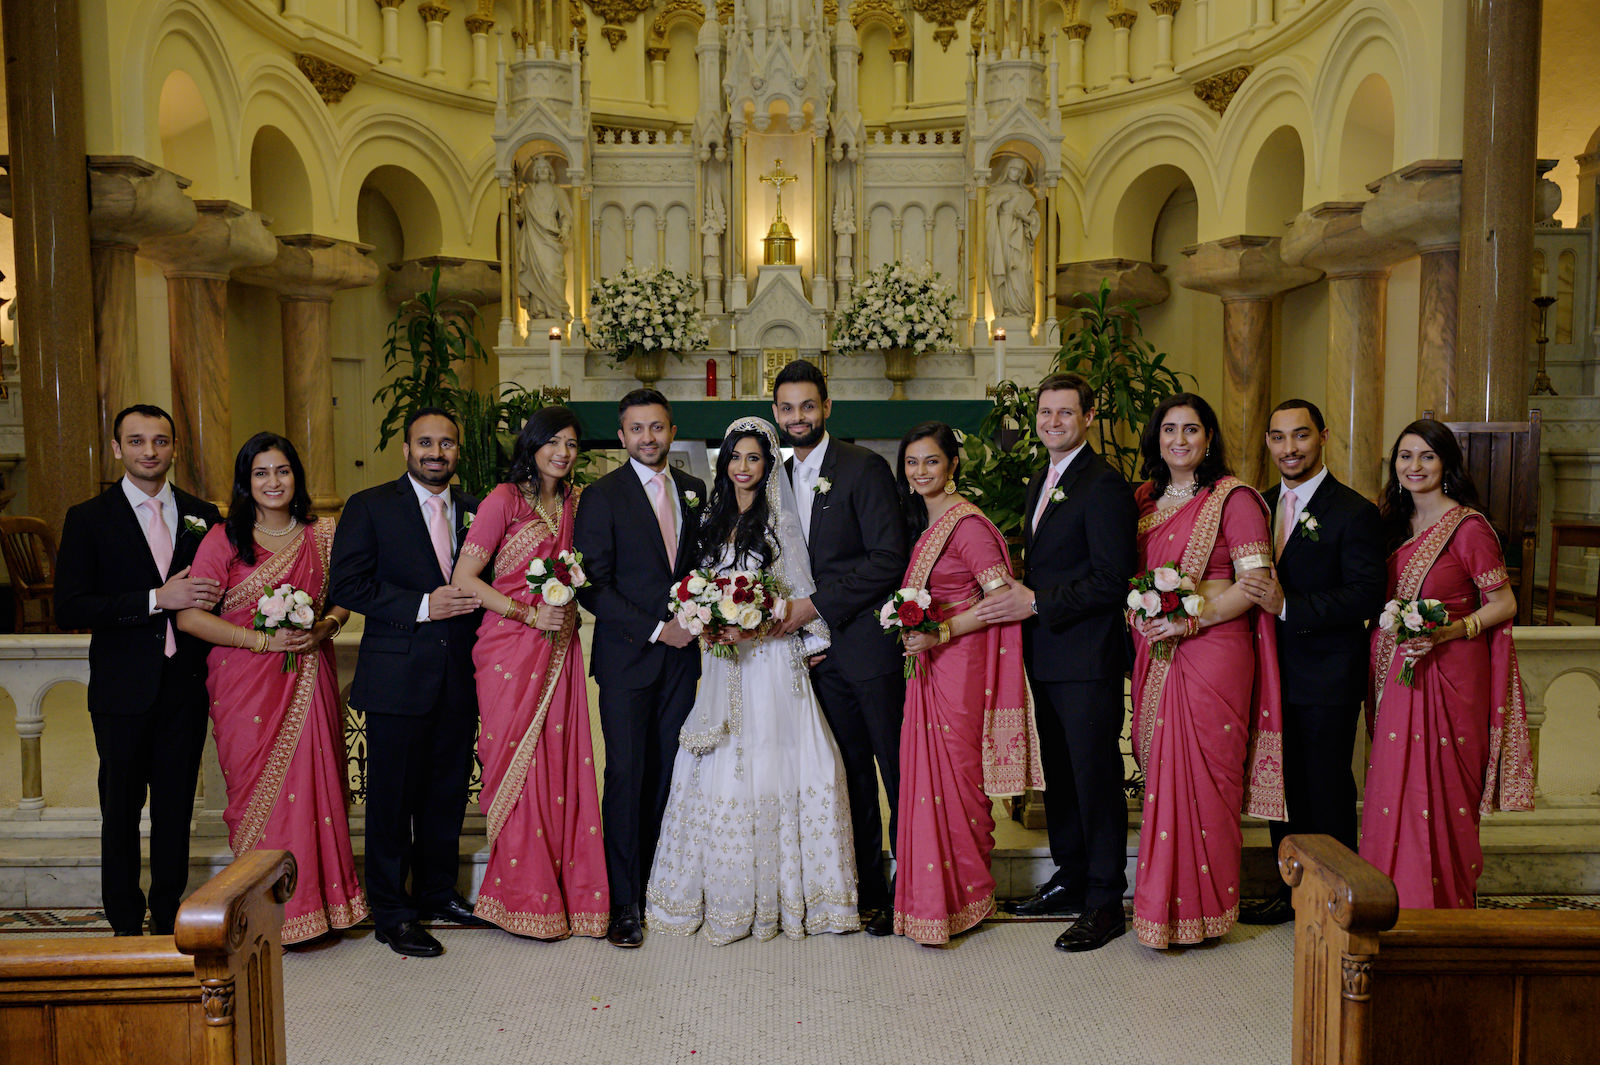 Florida Multicultural Indian Catholic Wedding Party Portrait with Berry Pink Fuchsia Sari and Black Suit Tux Wedding Portrait | Catholic Wedding Ceremony at Sacred Heart Catholic Church | Tampa Bay Wedding Hair and Makeup Artist Michele Renee the Studio